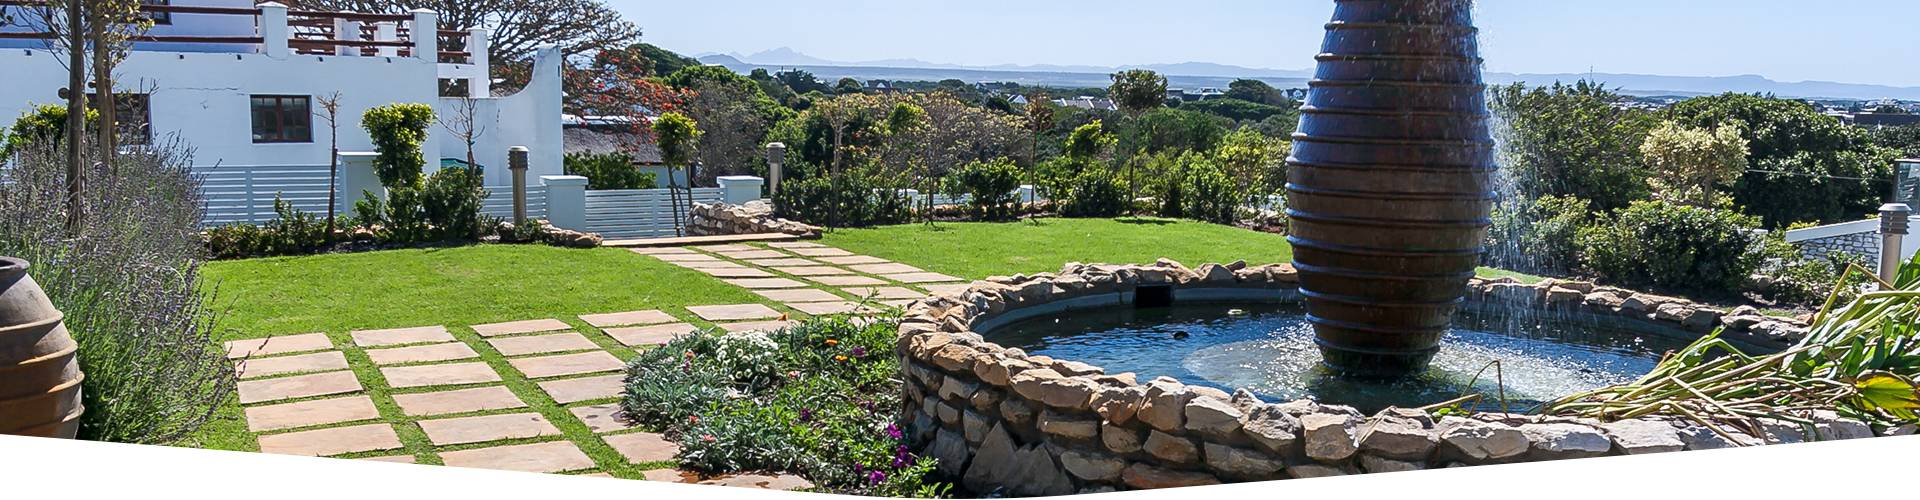 Landscaping-home-commercial-port-elizabeth